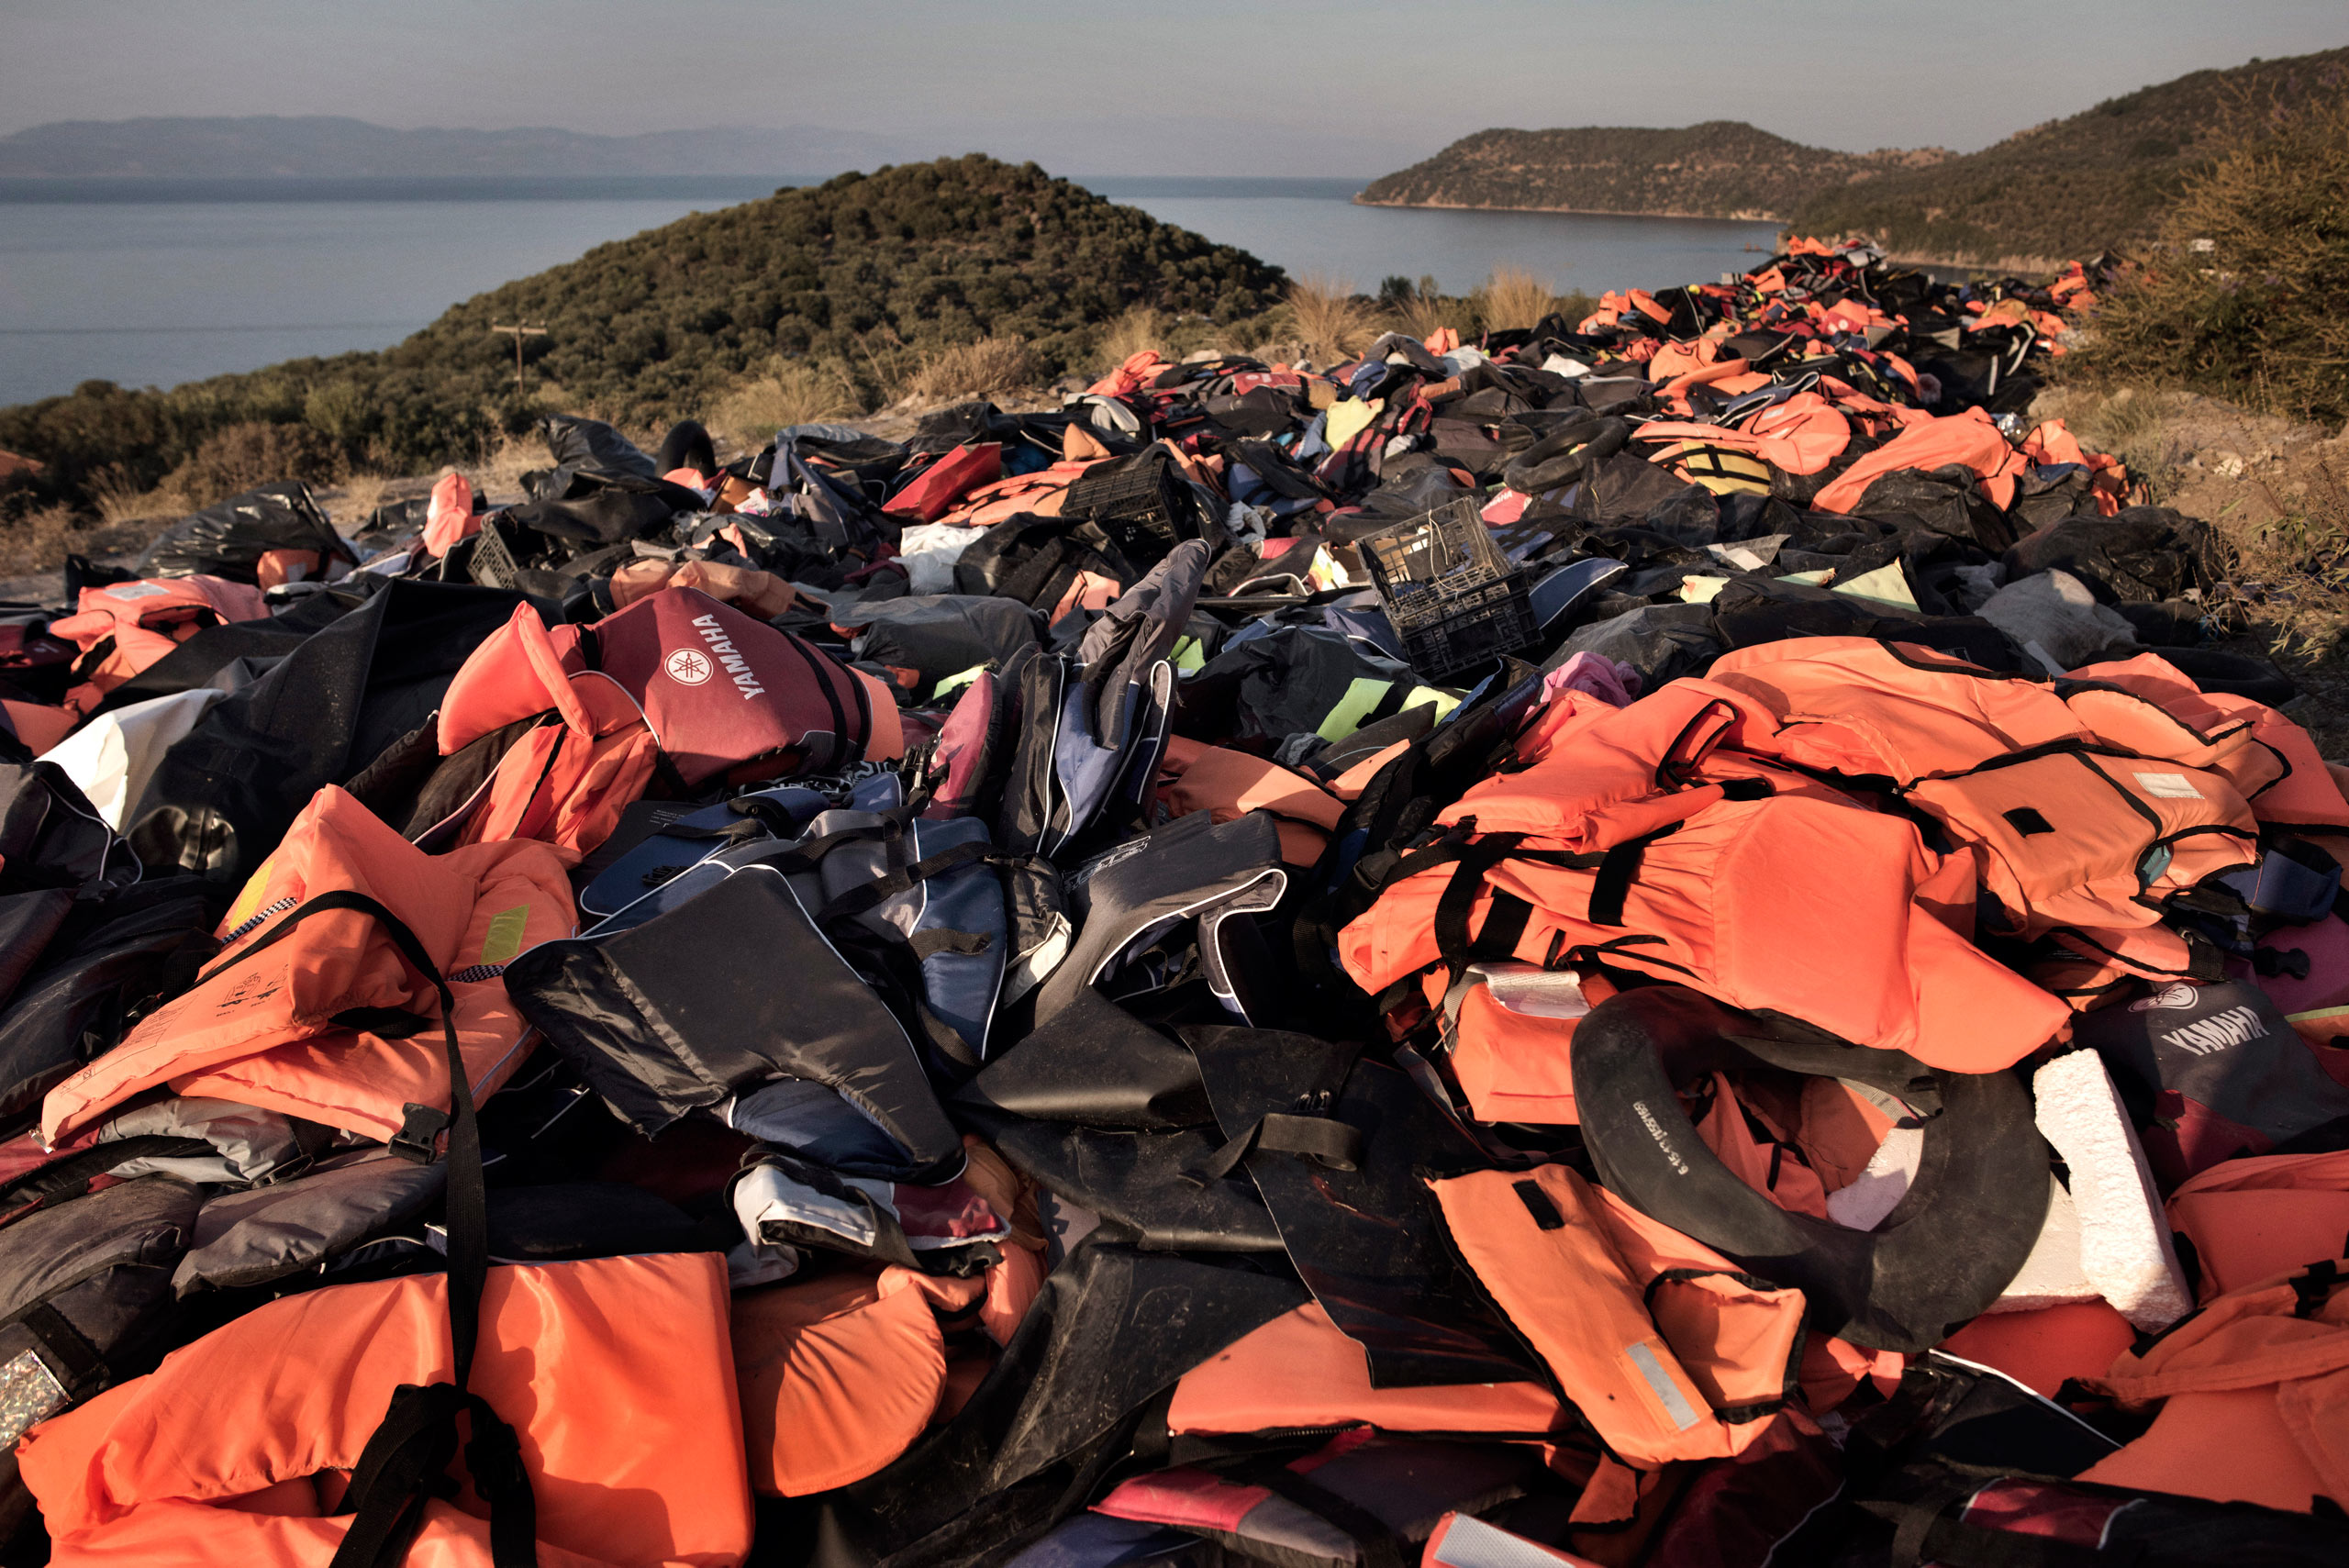 A beach  on the Greek island of Lesbos is festooned with orange life jackets and deflated rafts abandoned by migrants who are coming ashore near the village of Skala Sikamineas after navigating the 6-mile crossing from Turkey on  inflatable rafts.  Between 2,000 and 3,500 migrants now reach the island daily, riding on about 100 inflatable rafts. Sept. 15, 2015.